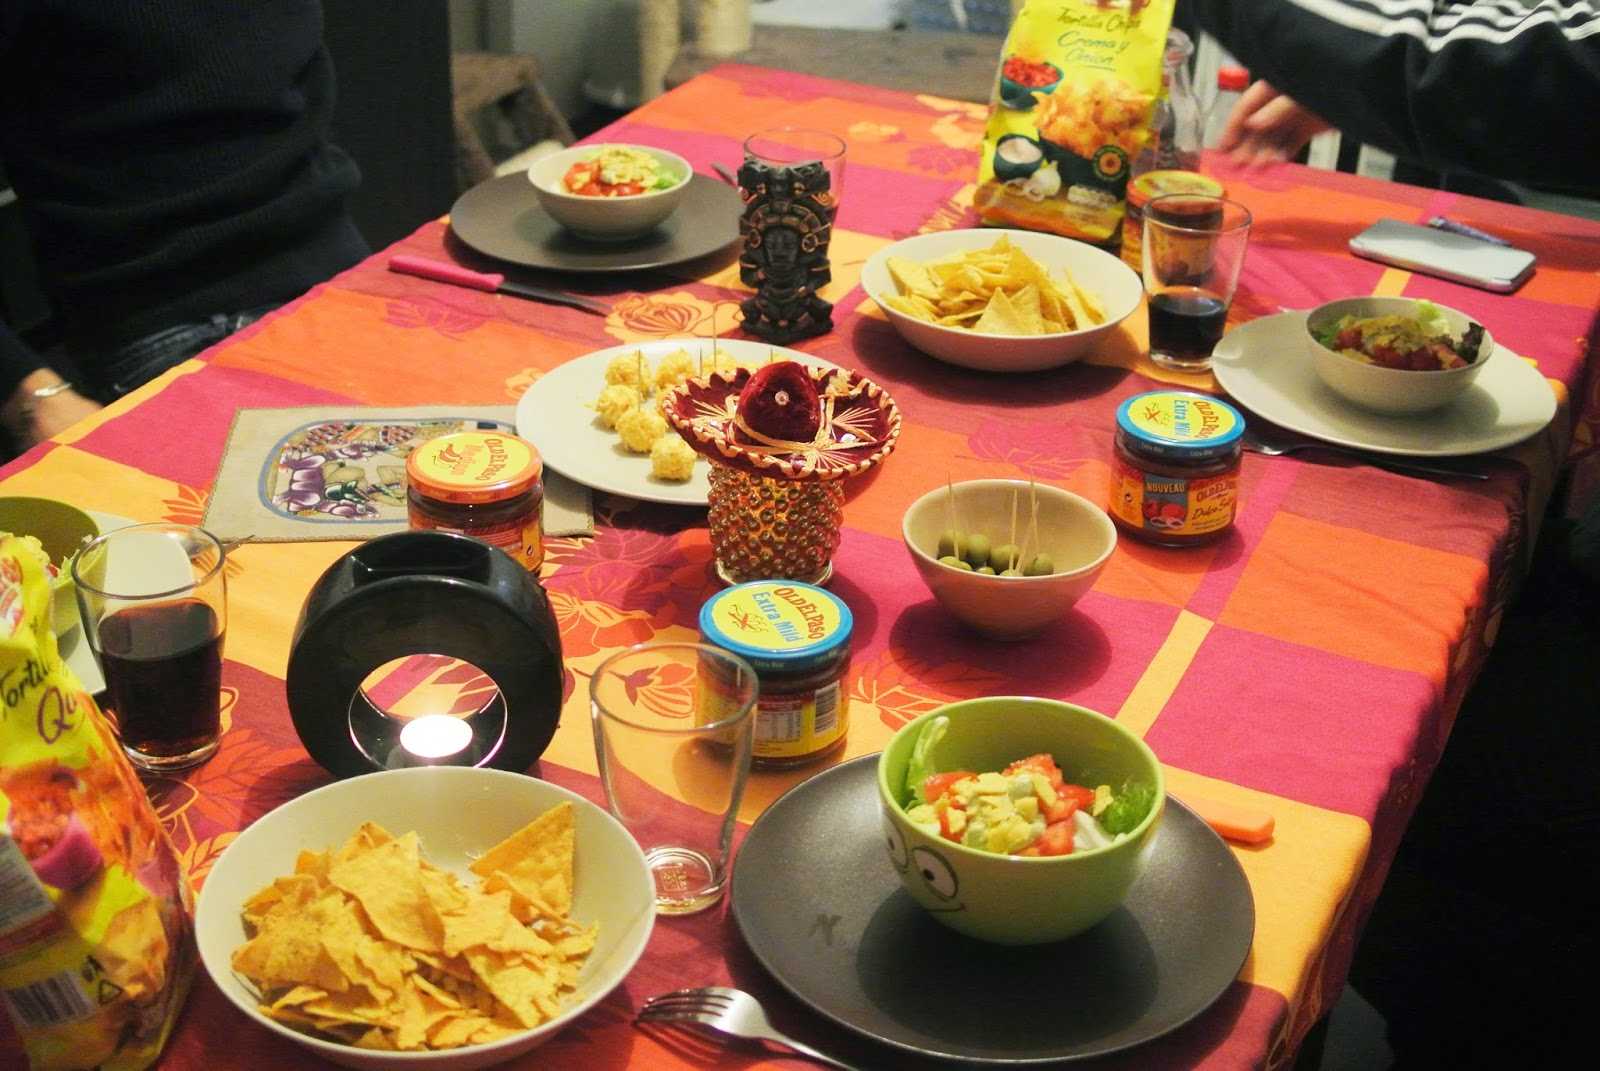 Beautyfood la f te des voisins continu avec old el paso for Diner simple entre amis